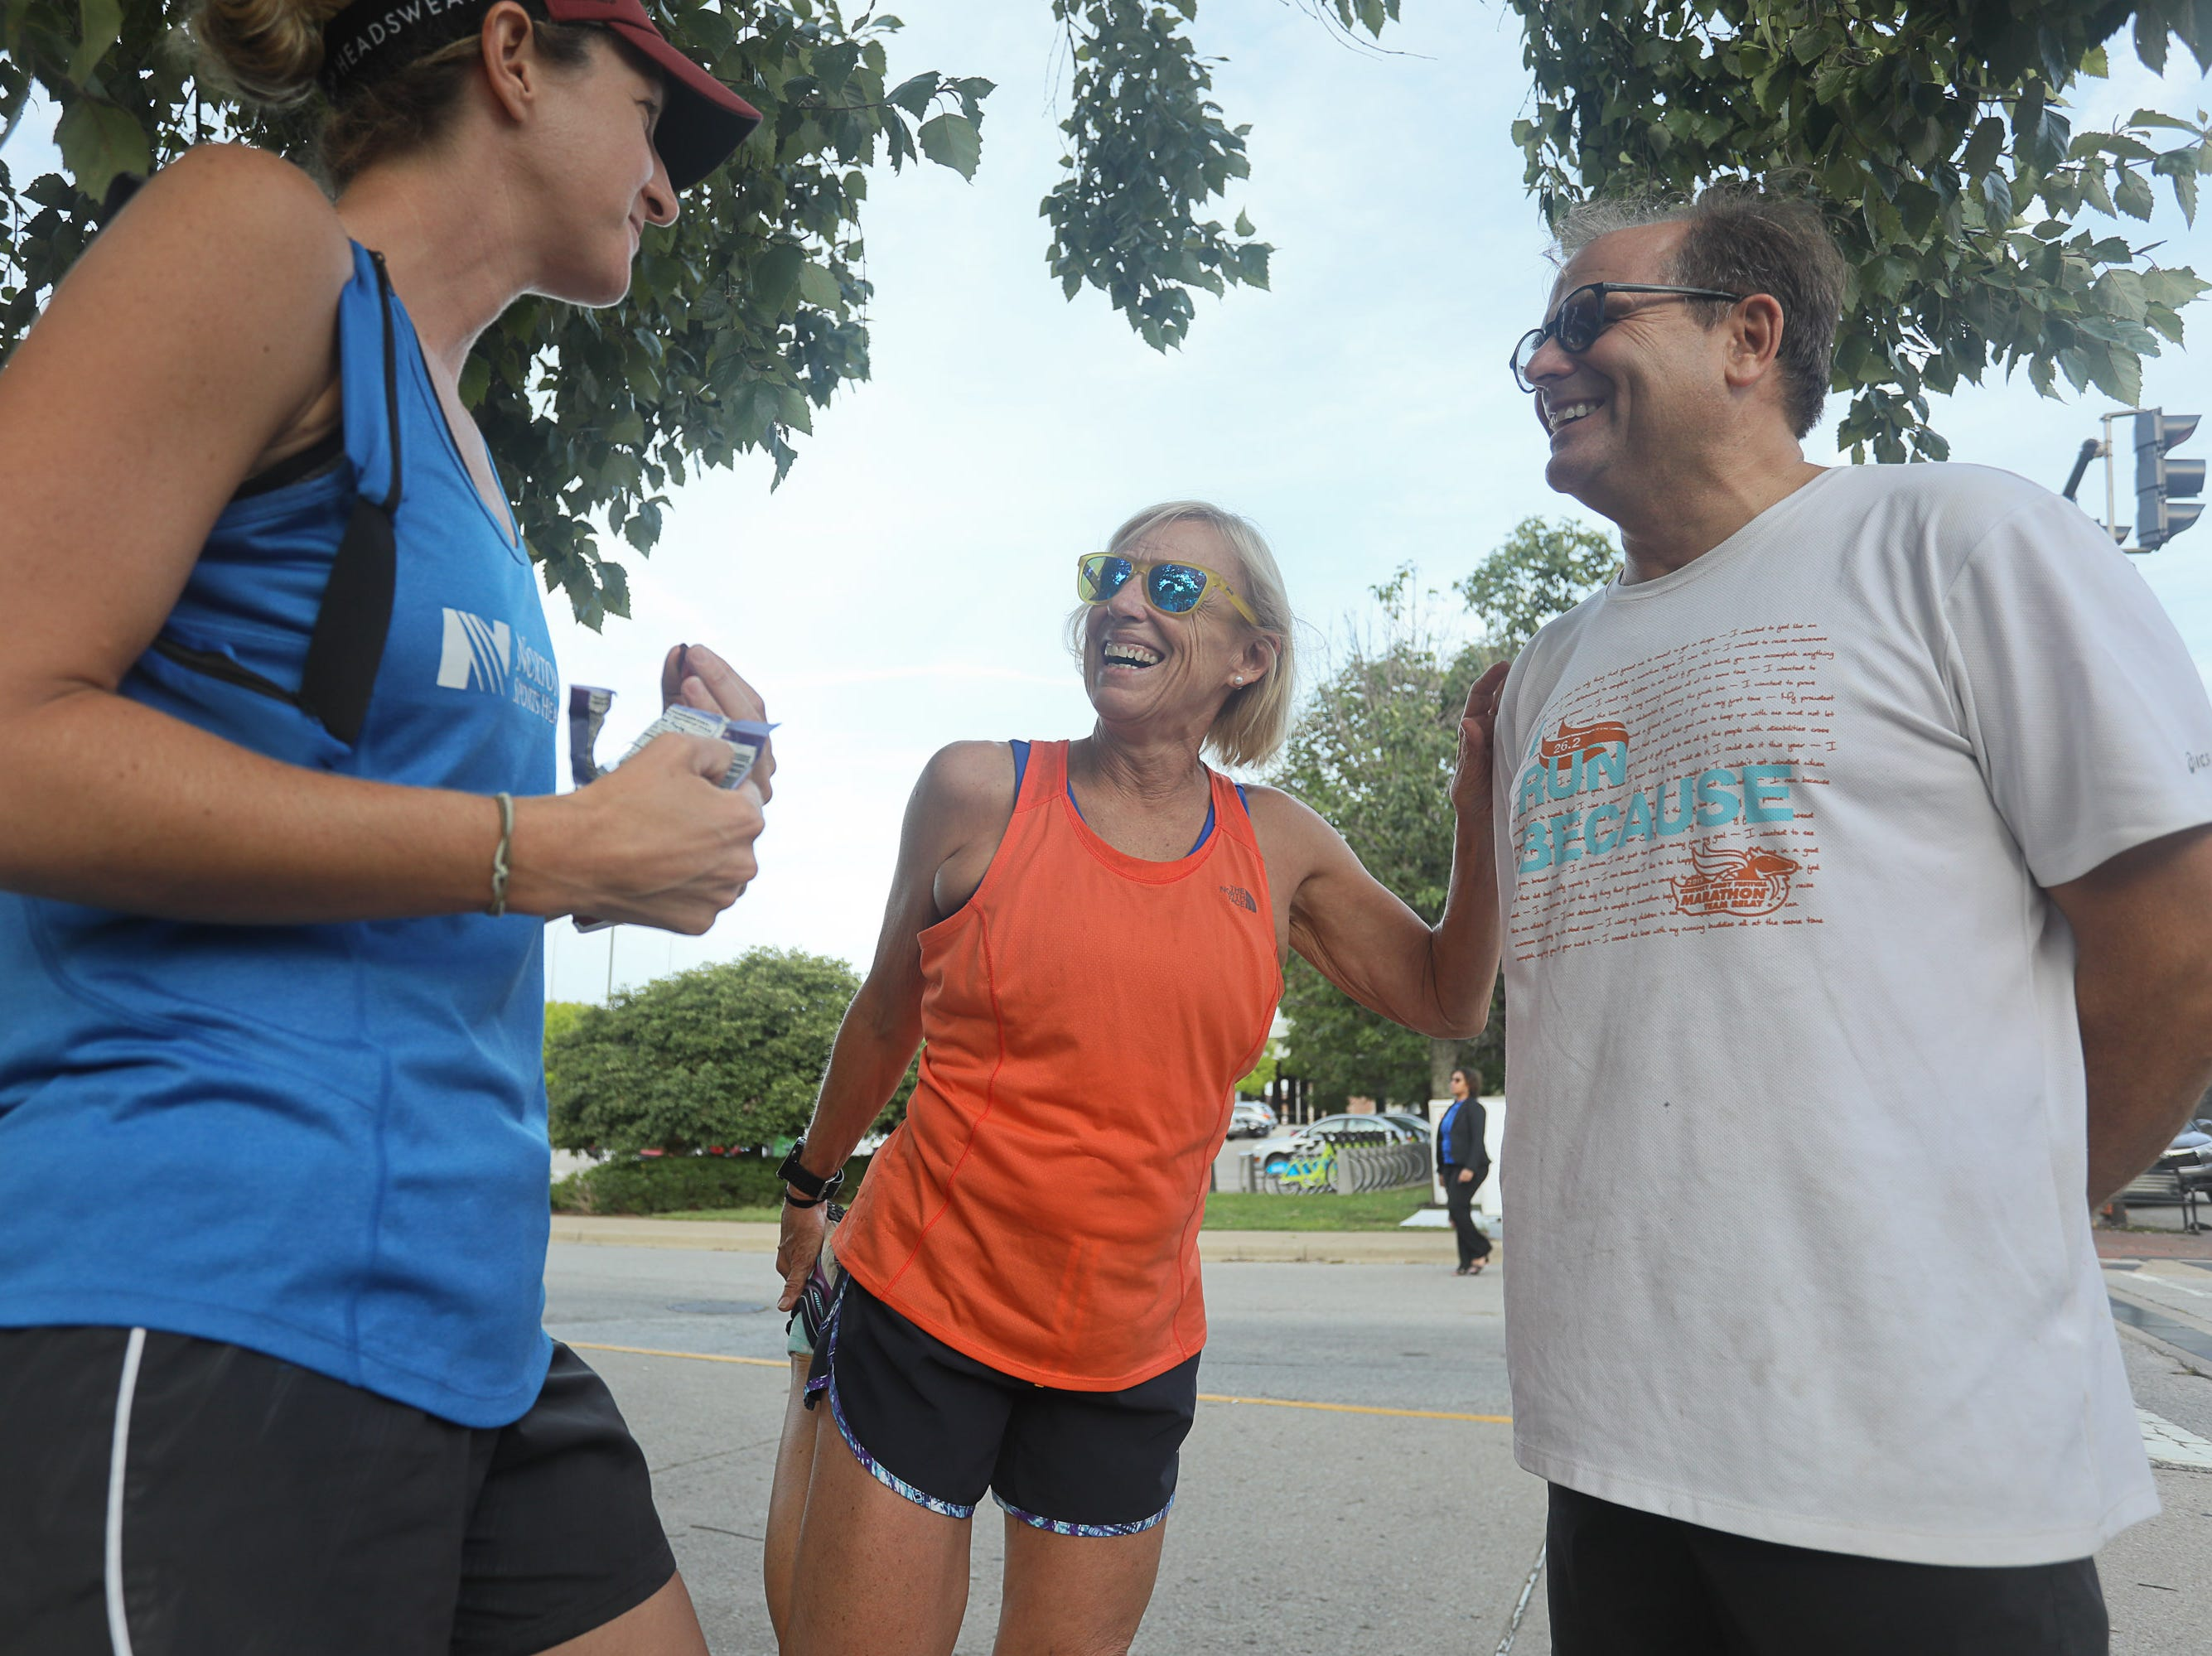 Stephanie Fish, Courier Journal reporter Kirby Adams, and John Grantz during a Derby City Run Club event at Against the Grain Brewery in Louisville, Ky. Sept. 12, 2018